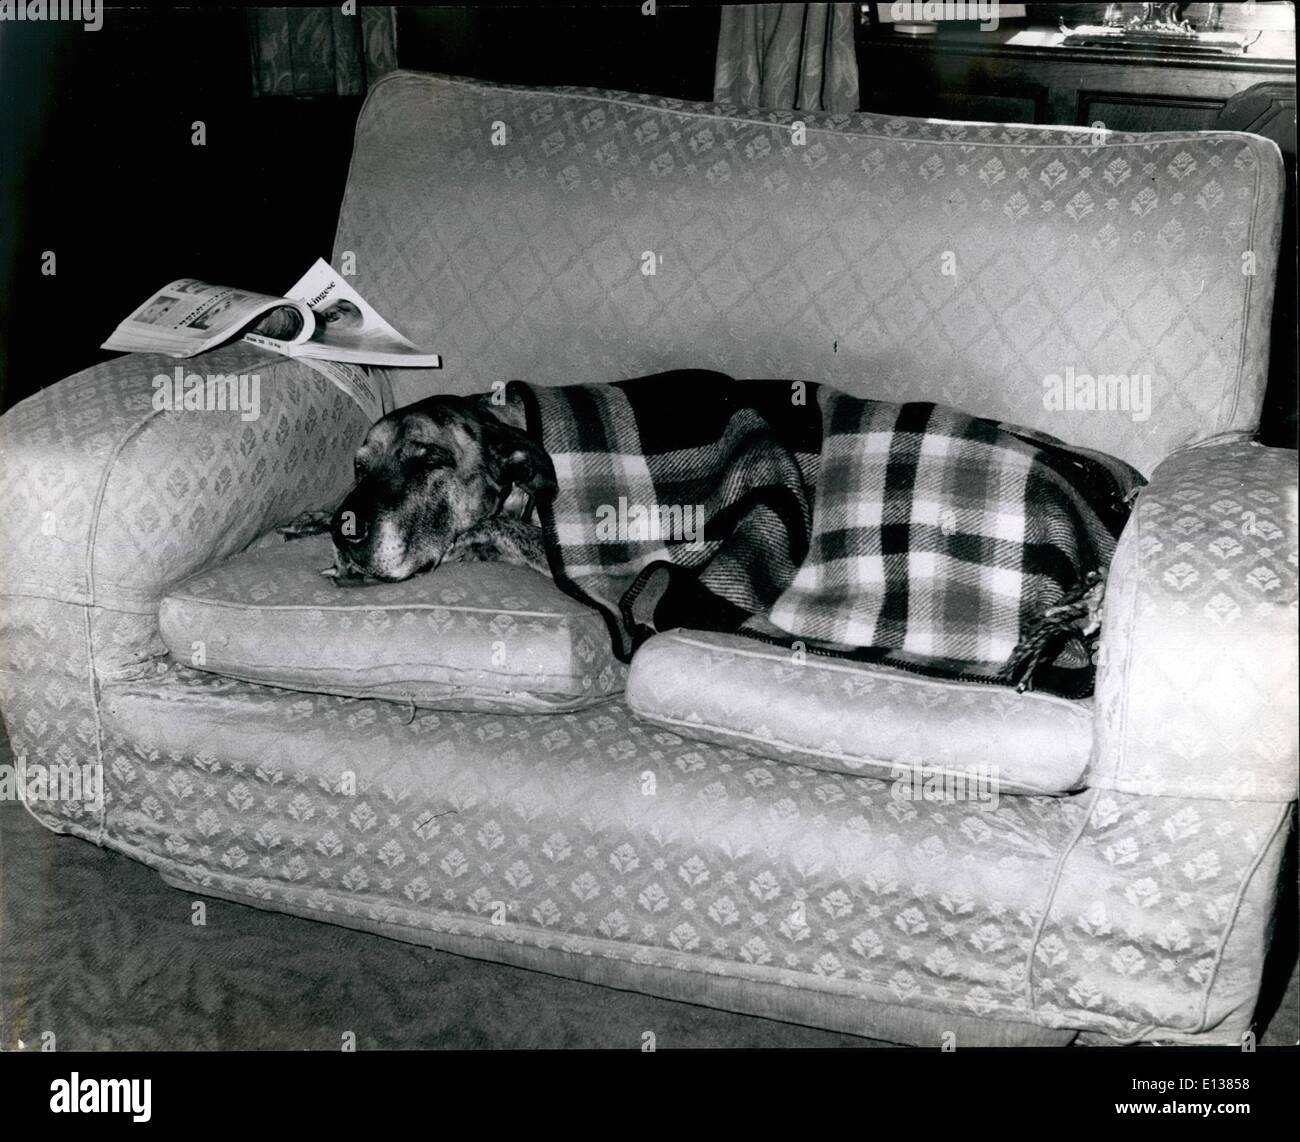 Feb. 29, 2012 - Goodnight: Canine filmstar juno has her own settees in each room of her Hertfordshire home. - Stock Image